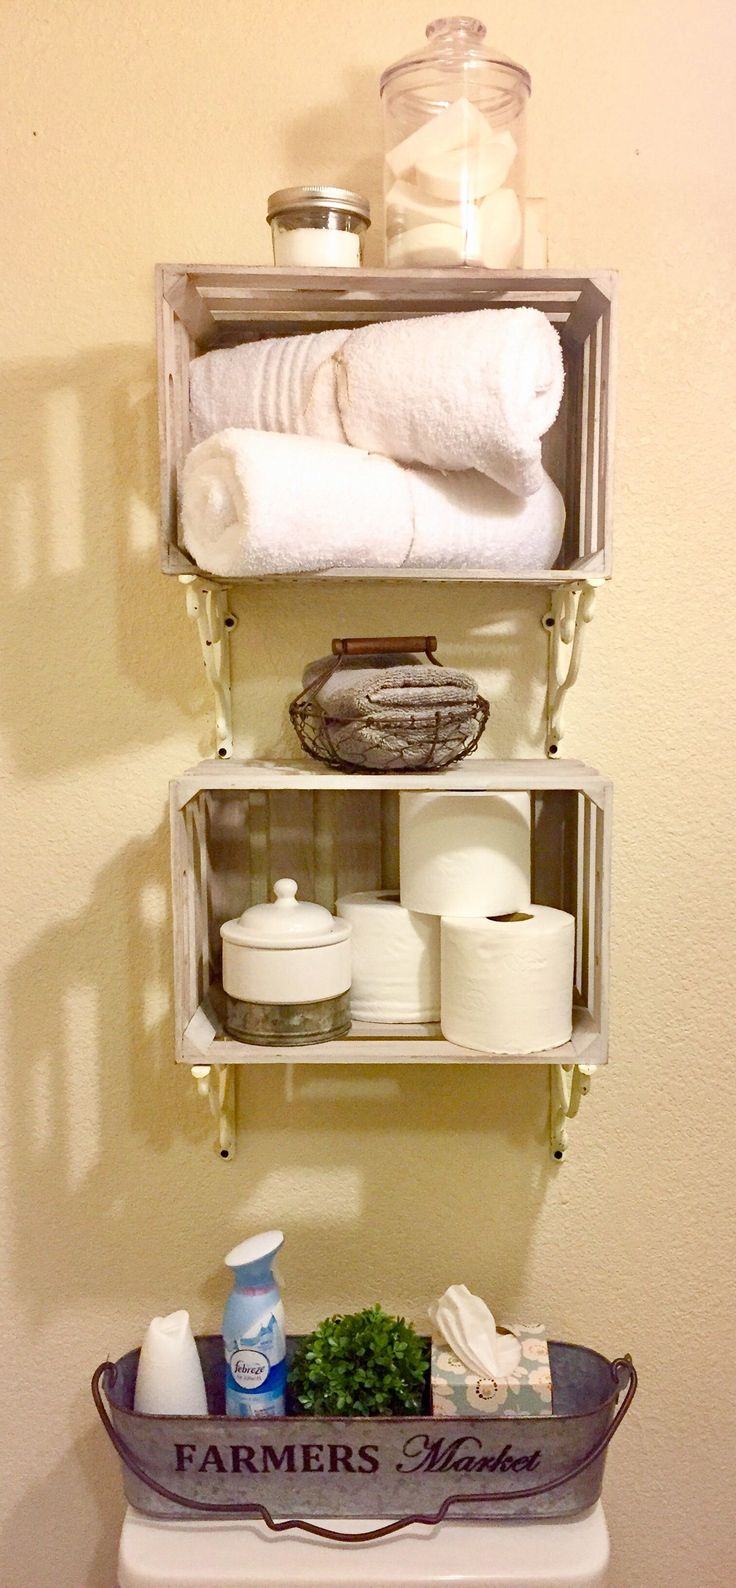 French country bathroom wall decor - French Country Farmhouse Bathroom Storage Shelves Decor